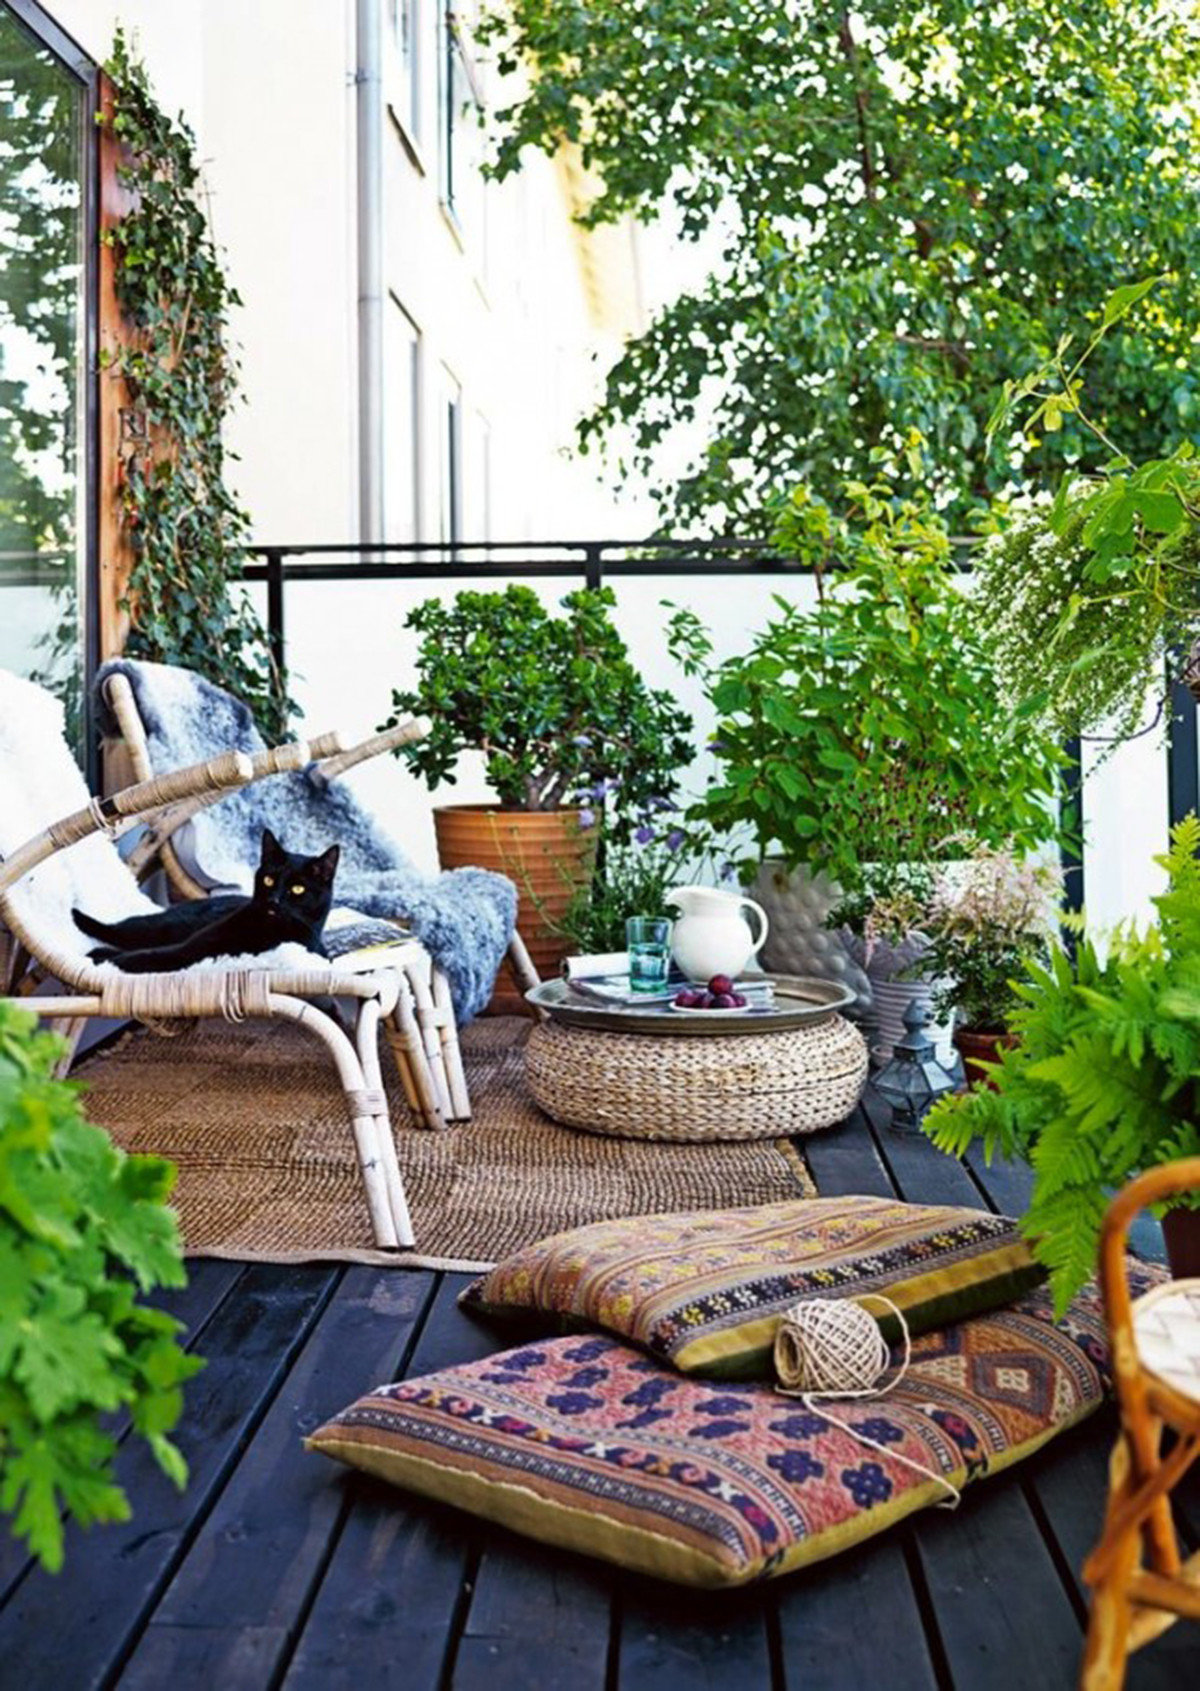 Astounding balcony garden idea 58 on modern decoration desig.